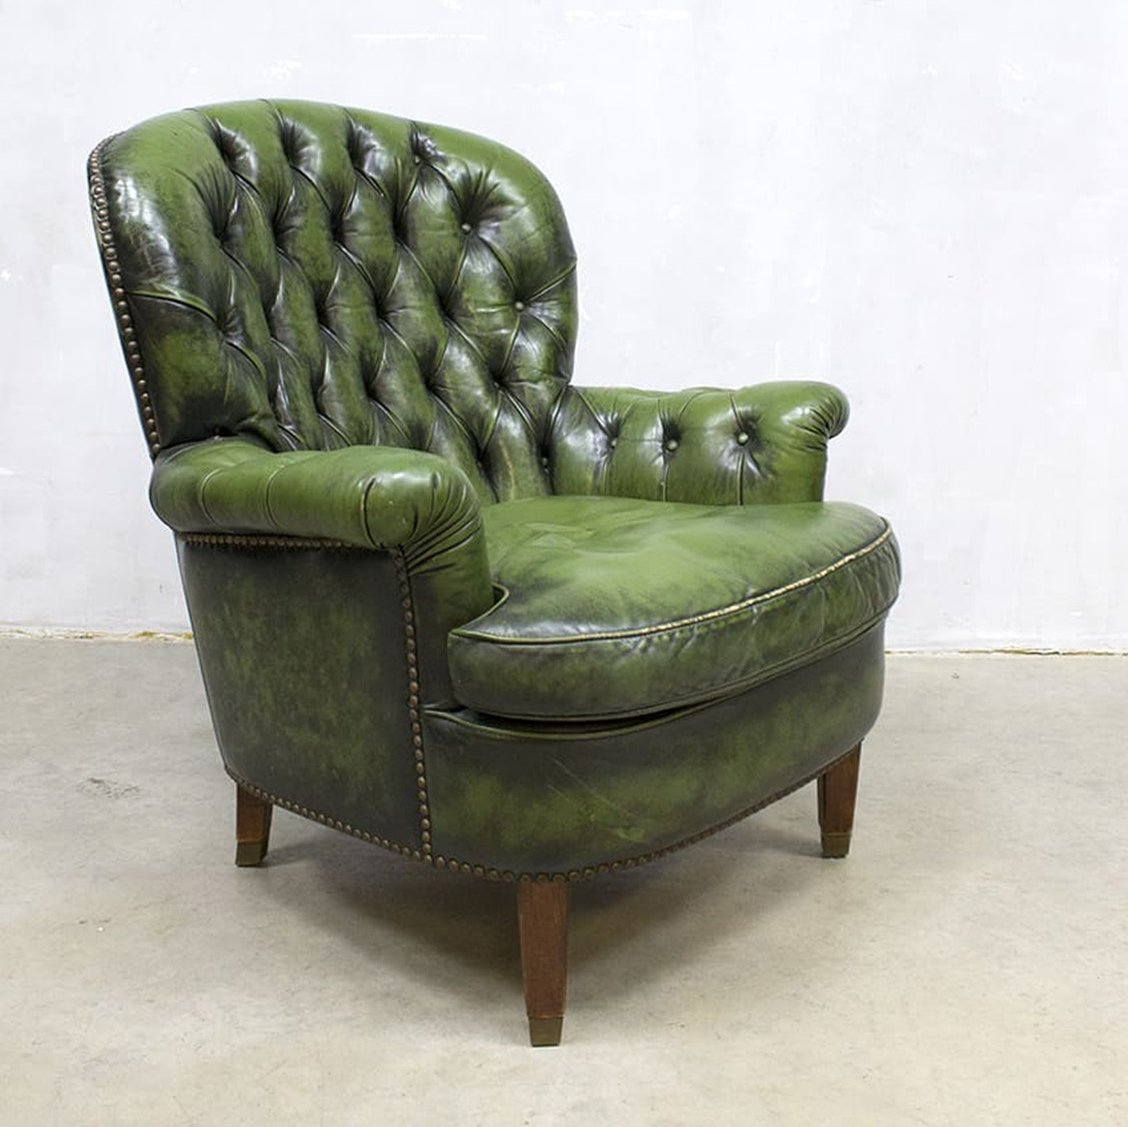 Green Chesterfield Arm Chair 1950s